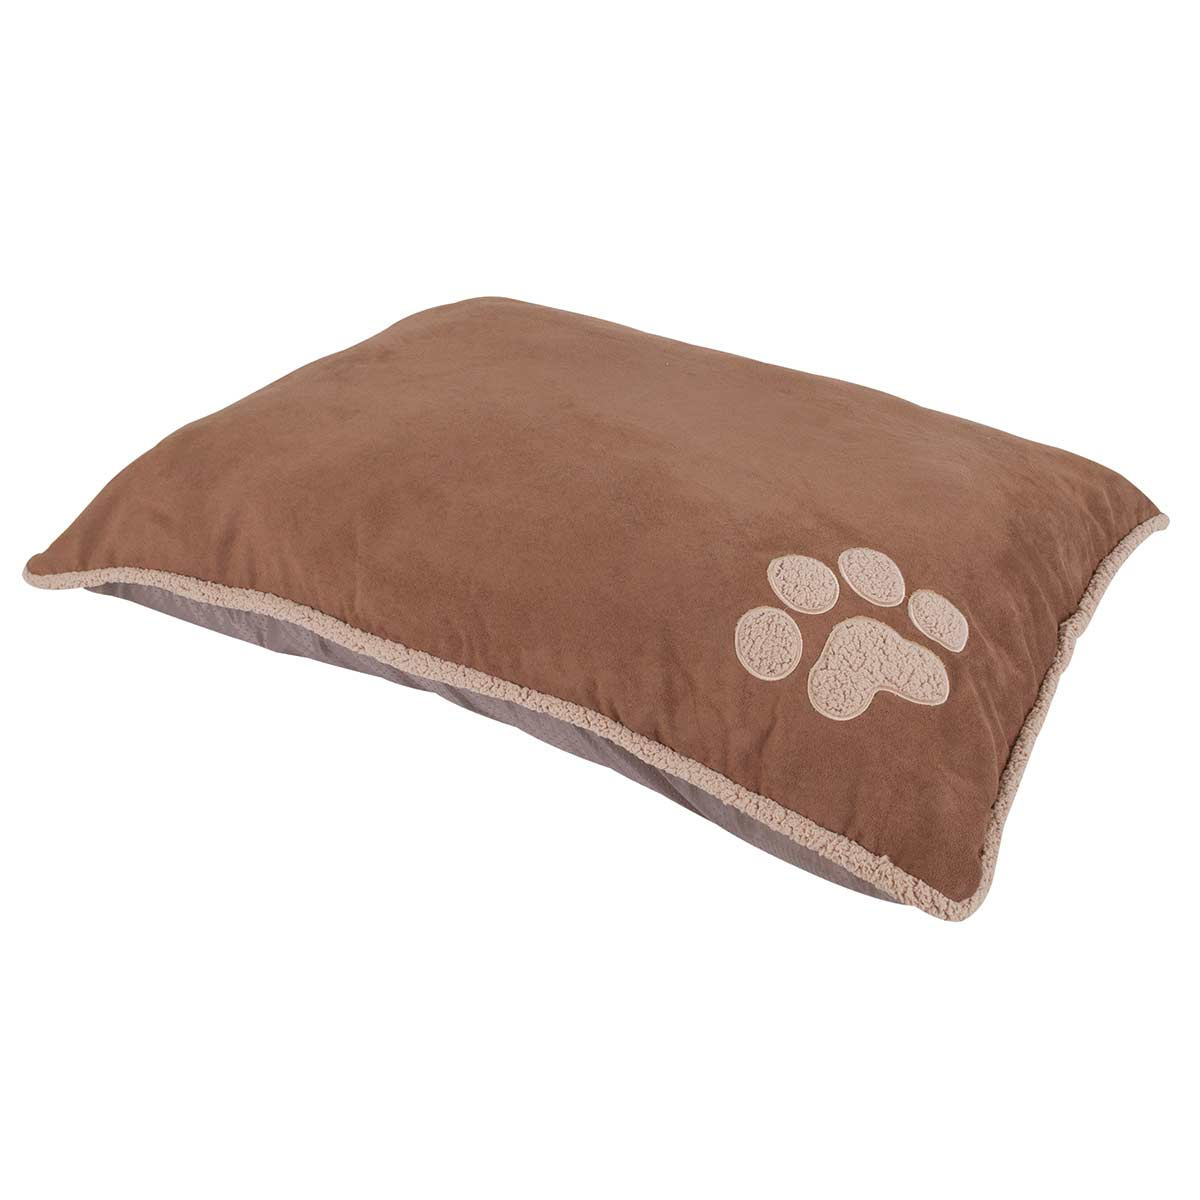 Aspen Pet Shearling Edge Pillow Bed Tan/Brown - 27 inches by 36 inches